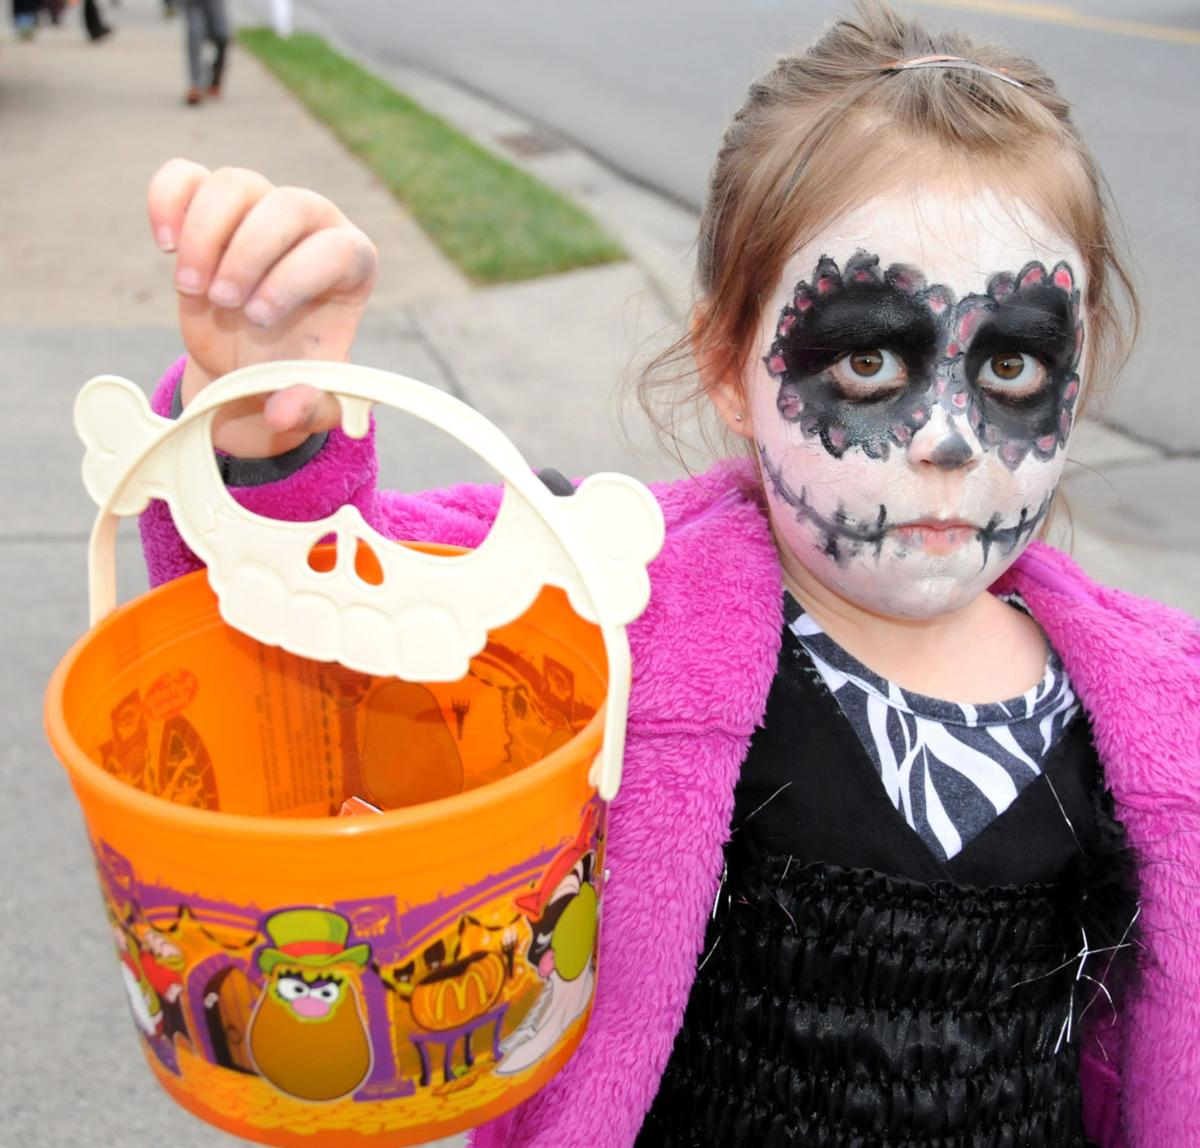 Halloween Happenings Bristol Kingsport Johnson City 2020 Ready for a scare: Johnson City area prepares for Halloween with